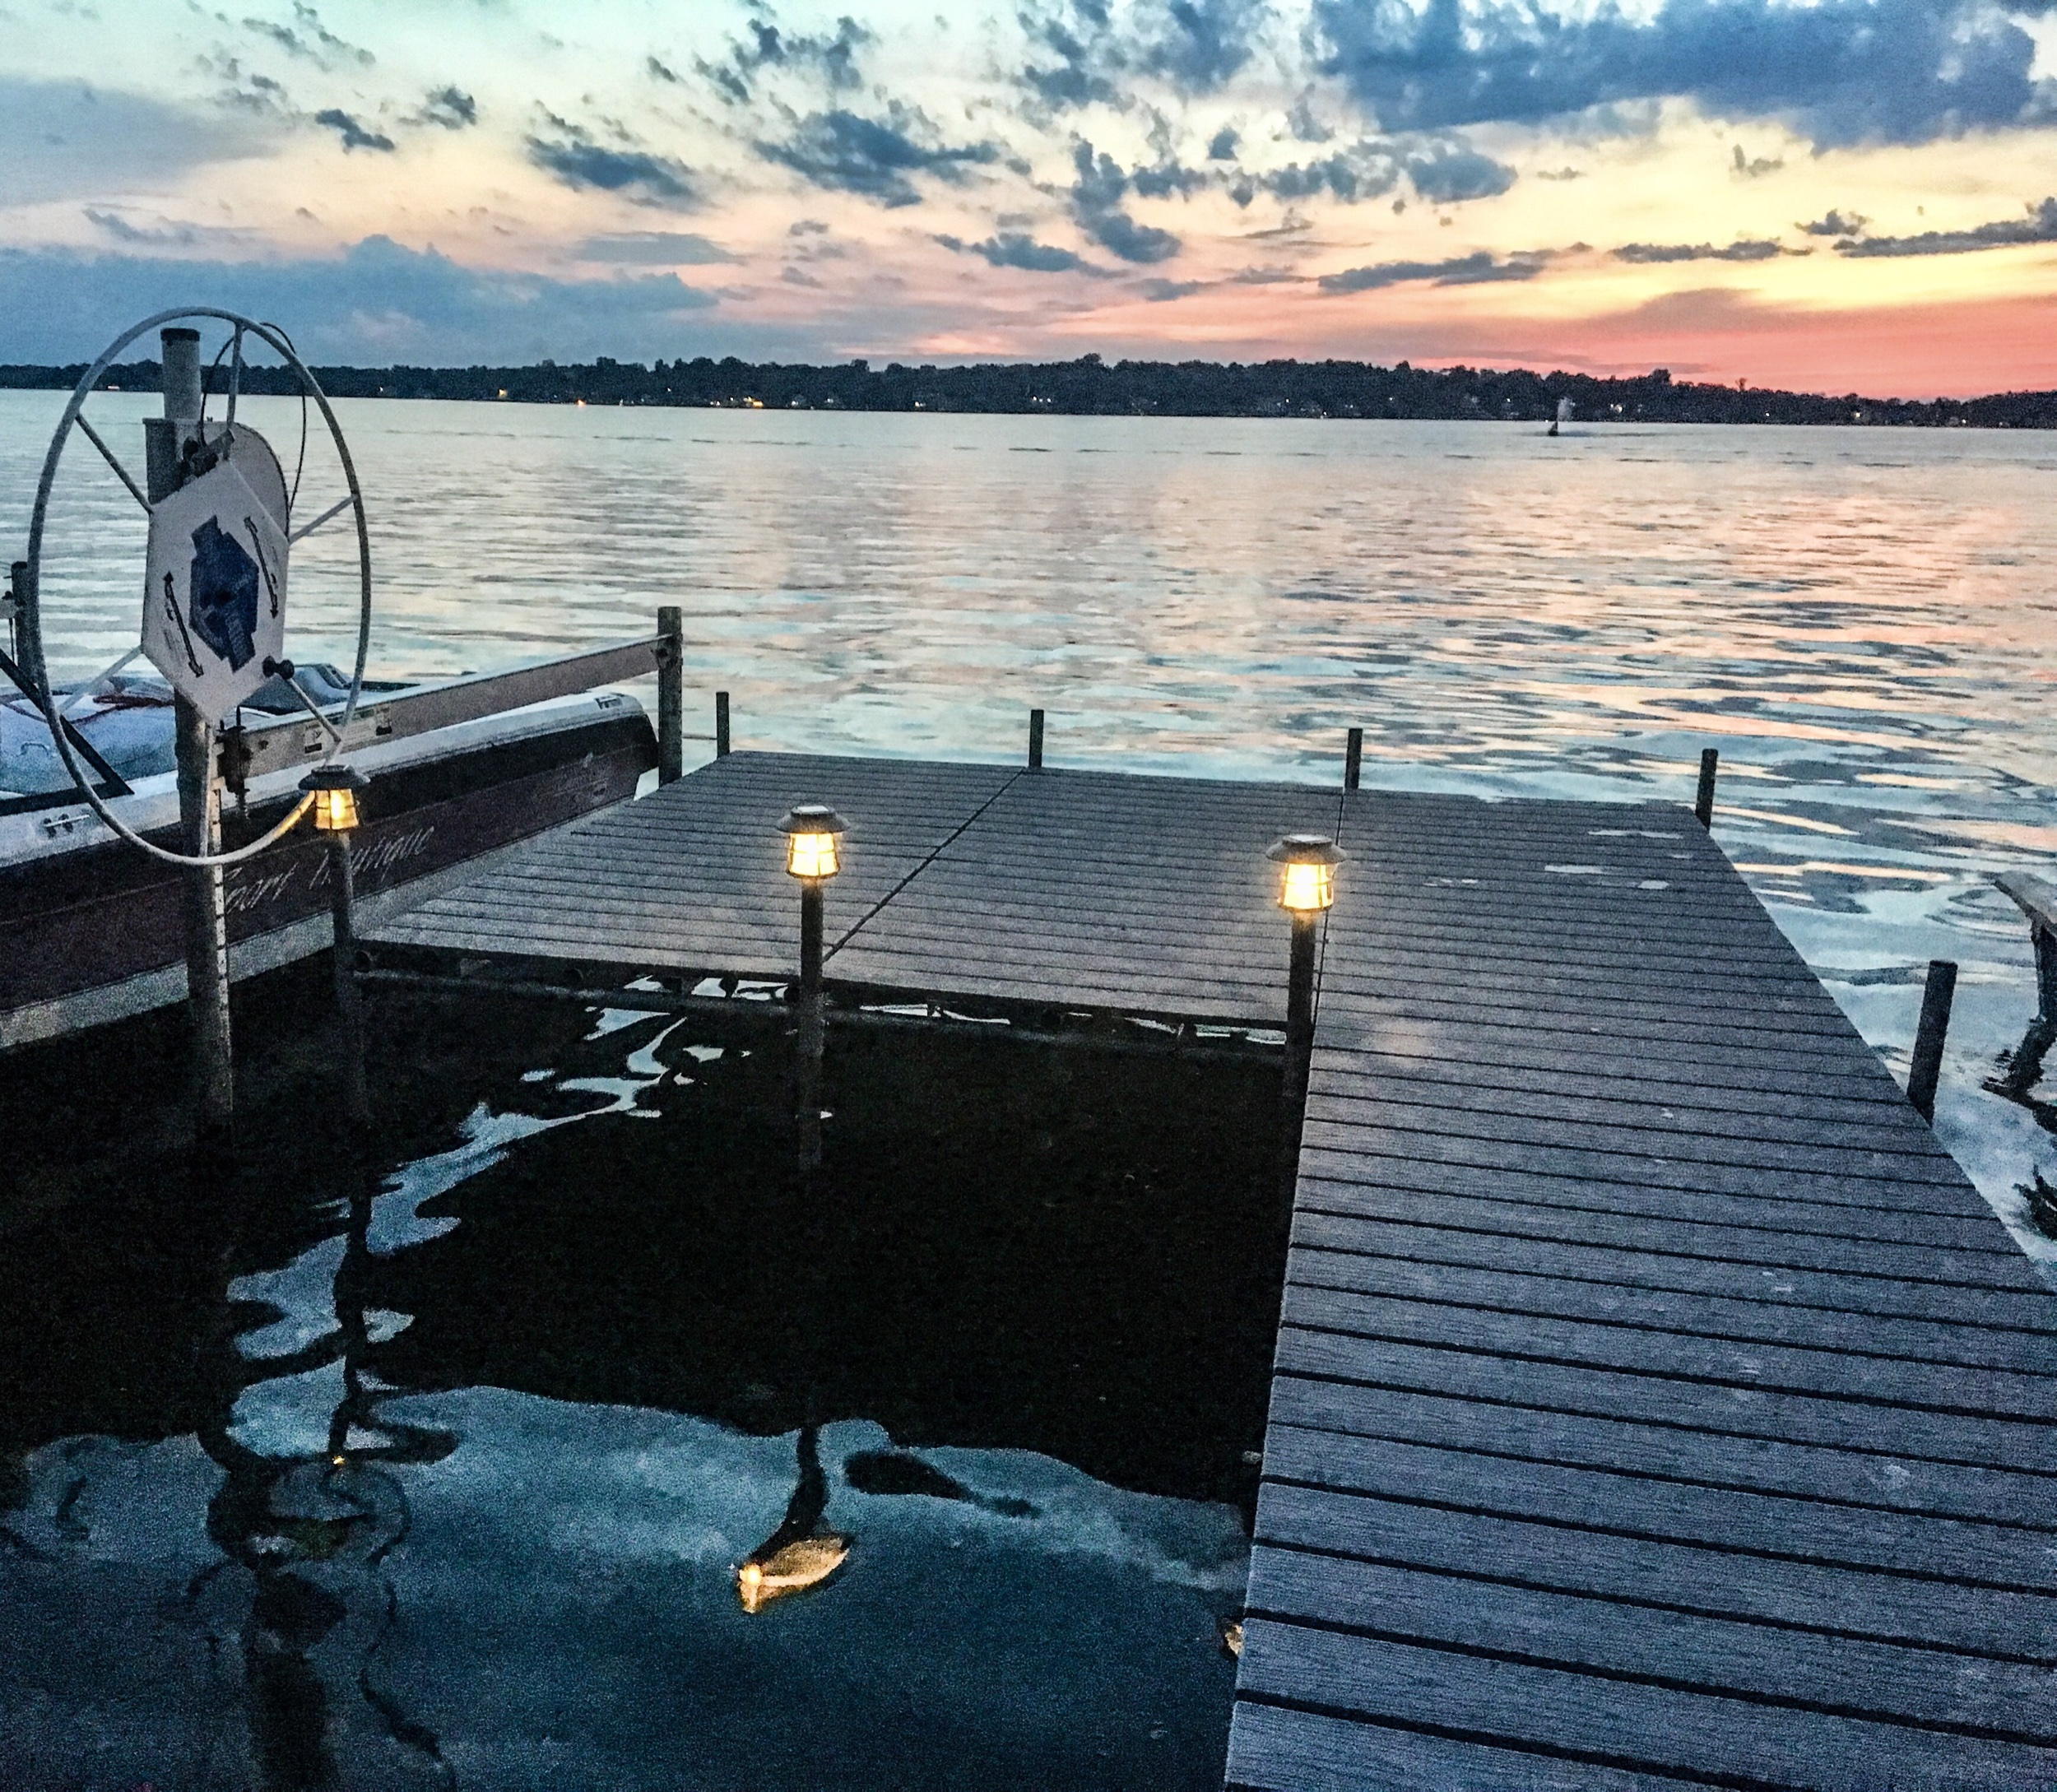 LED Solar Pathway Lights on a dock. Dock lights for a lake house. Lake house dock lights. Lit dock at night. Outdoor light ideas for a dock. #Dock #light #ideas